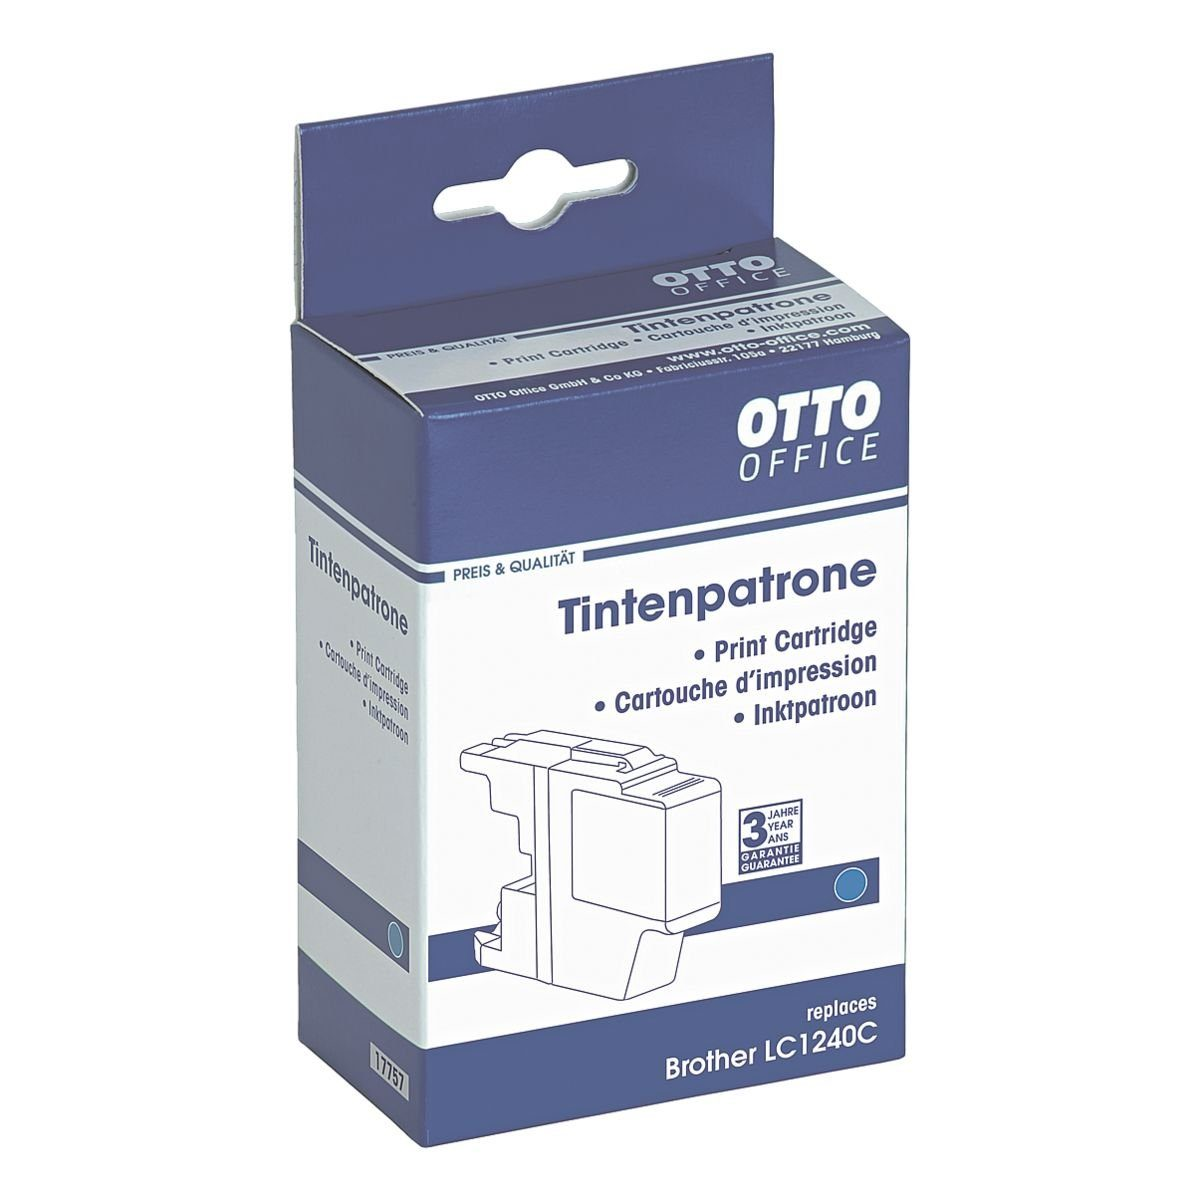 OTTO Office Tintenpatrone ersetzt Brother »LC1240C«